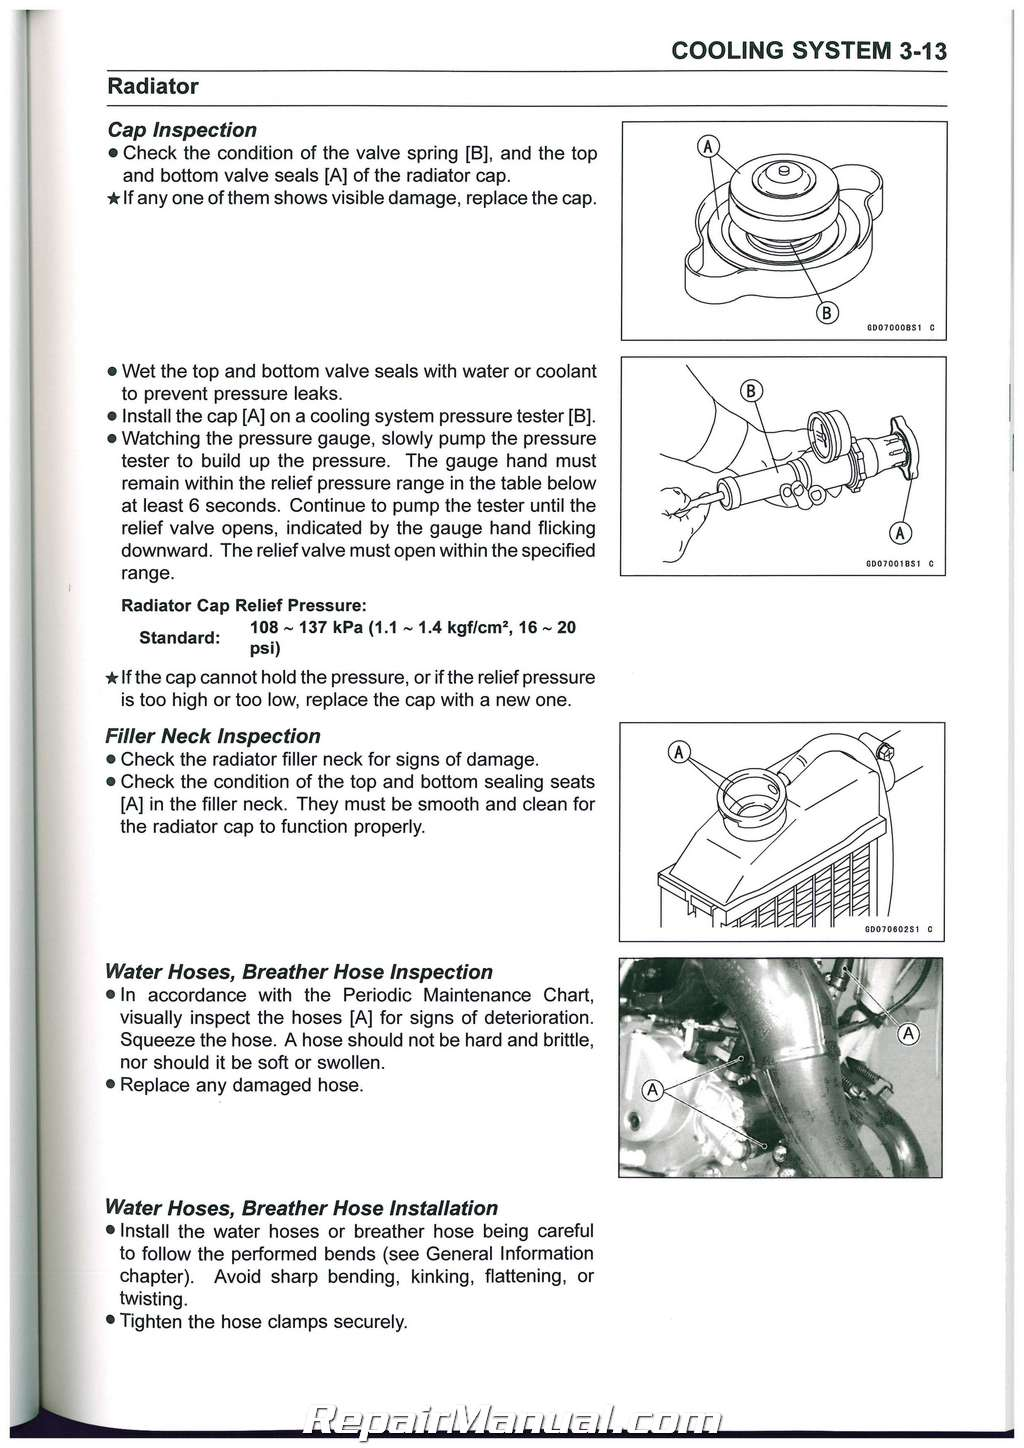 Kx 65 Repair Manual 1998 Citroen Berlingo Wiring Diagram That Includes Nsf Door Lock Array 2000 2017 Kawasaki Kx65 Motorcycle Service Rh Repairmanual